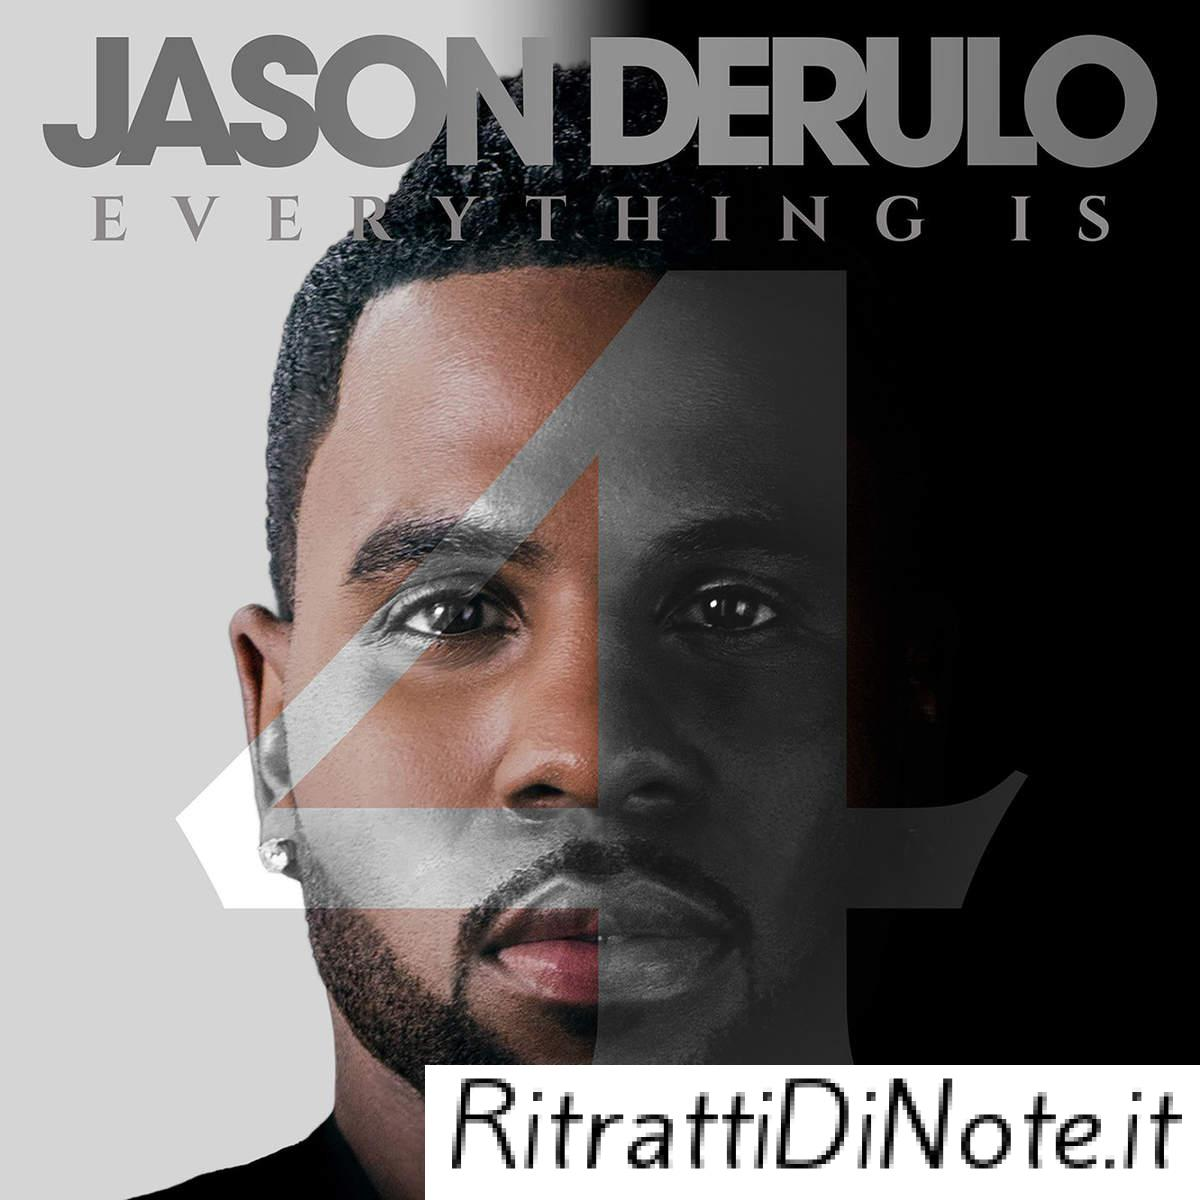 Jason-Derulo-Everything-Is-4-2015-1200x1200